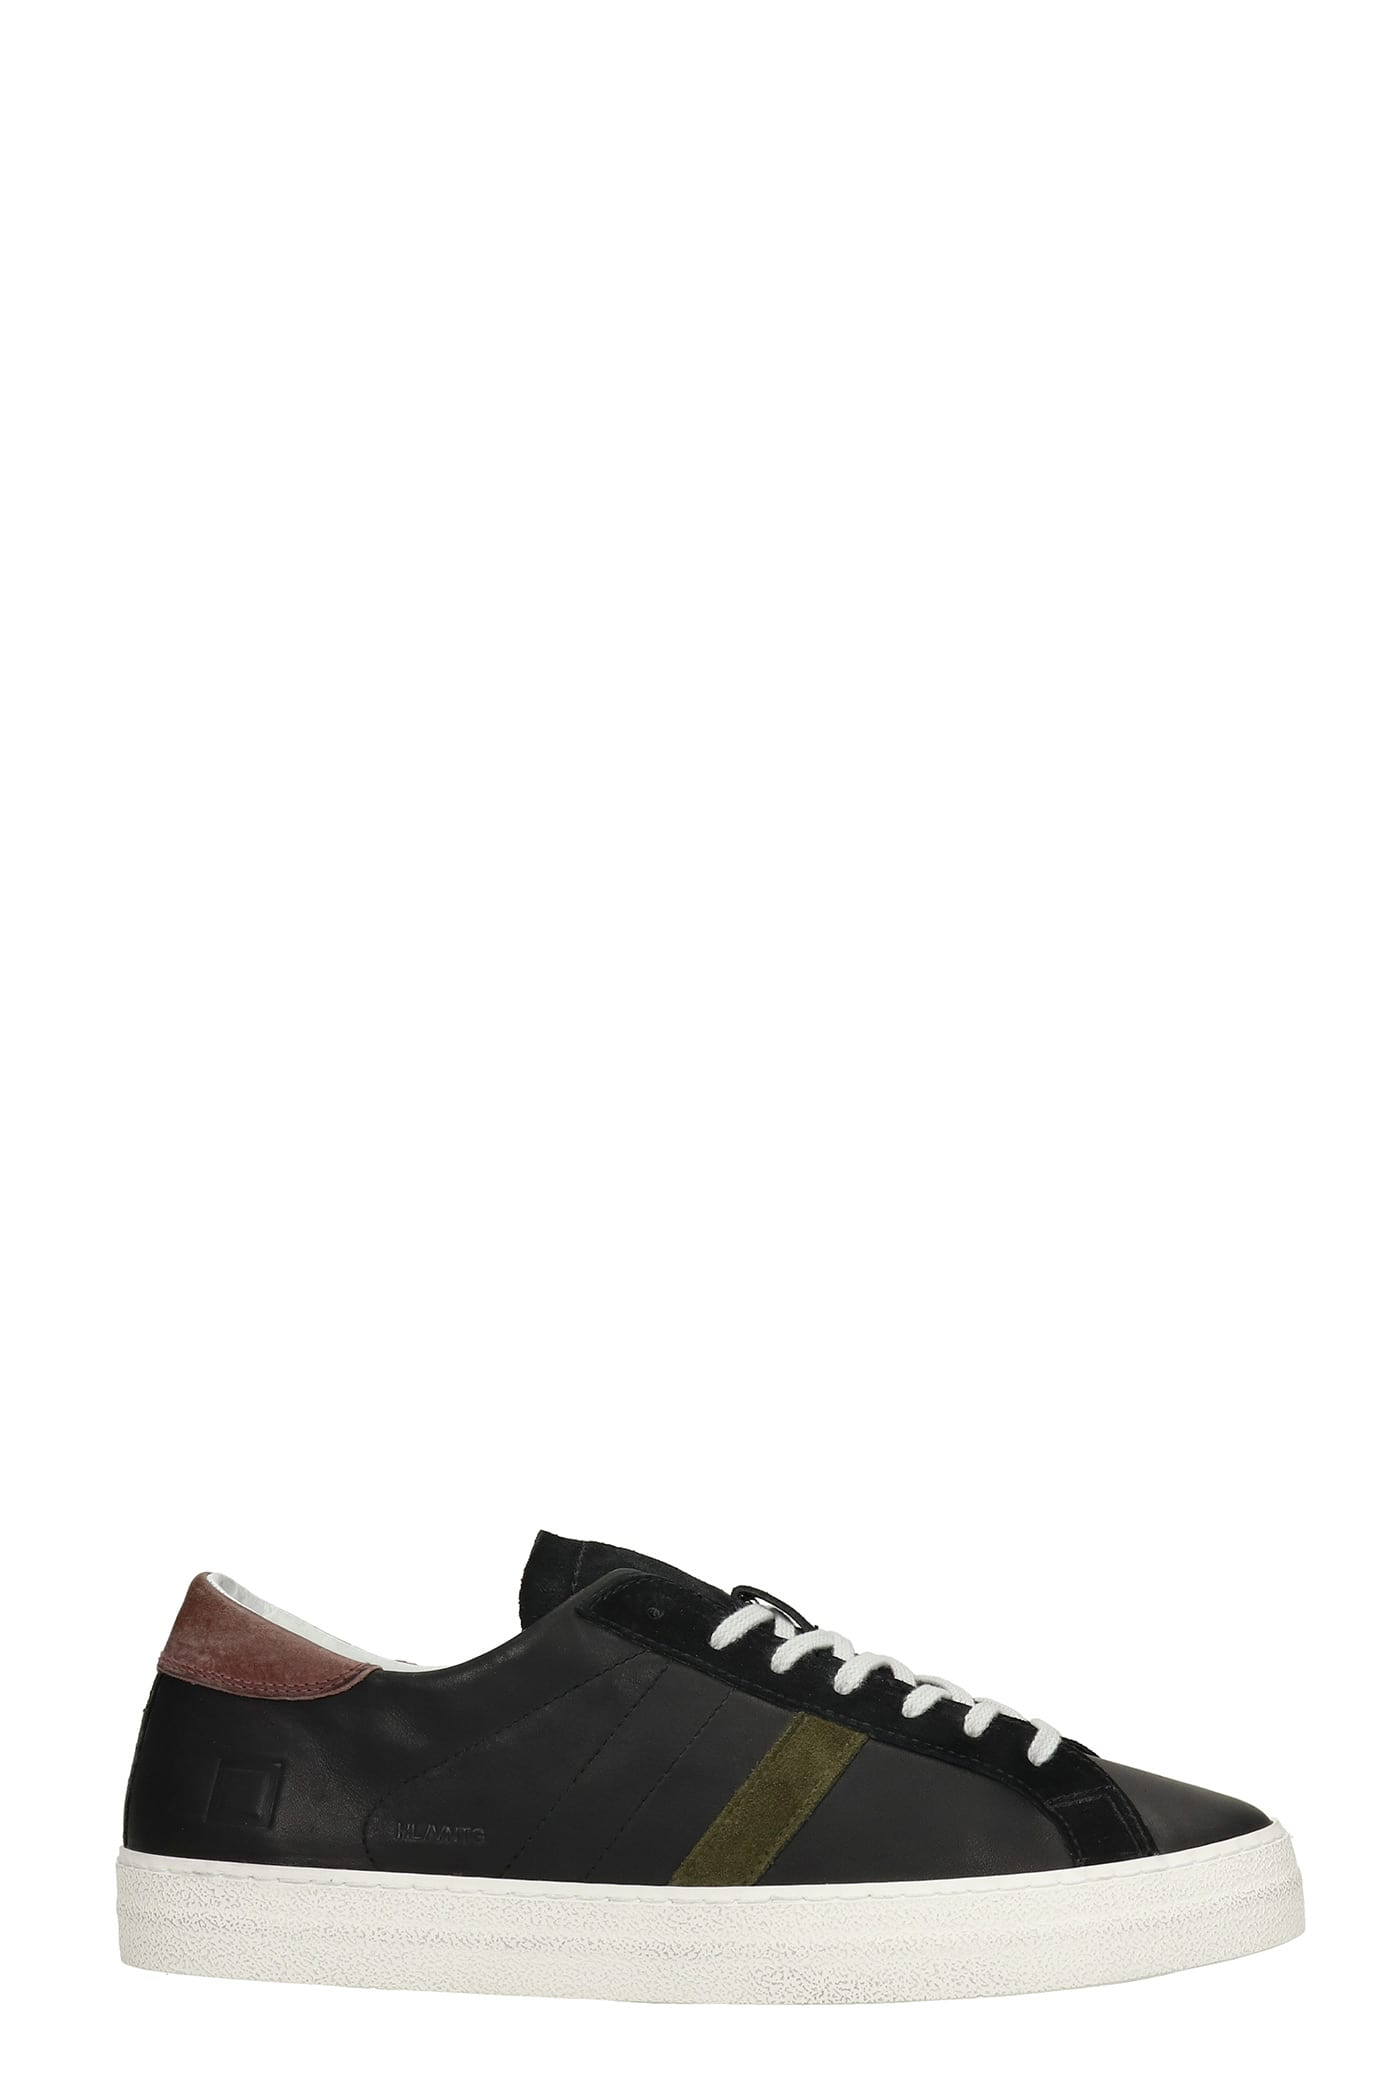 Hill Low Sneakers In Black Suede And Leather